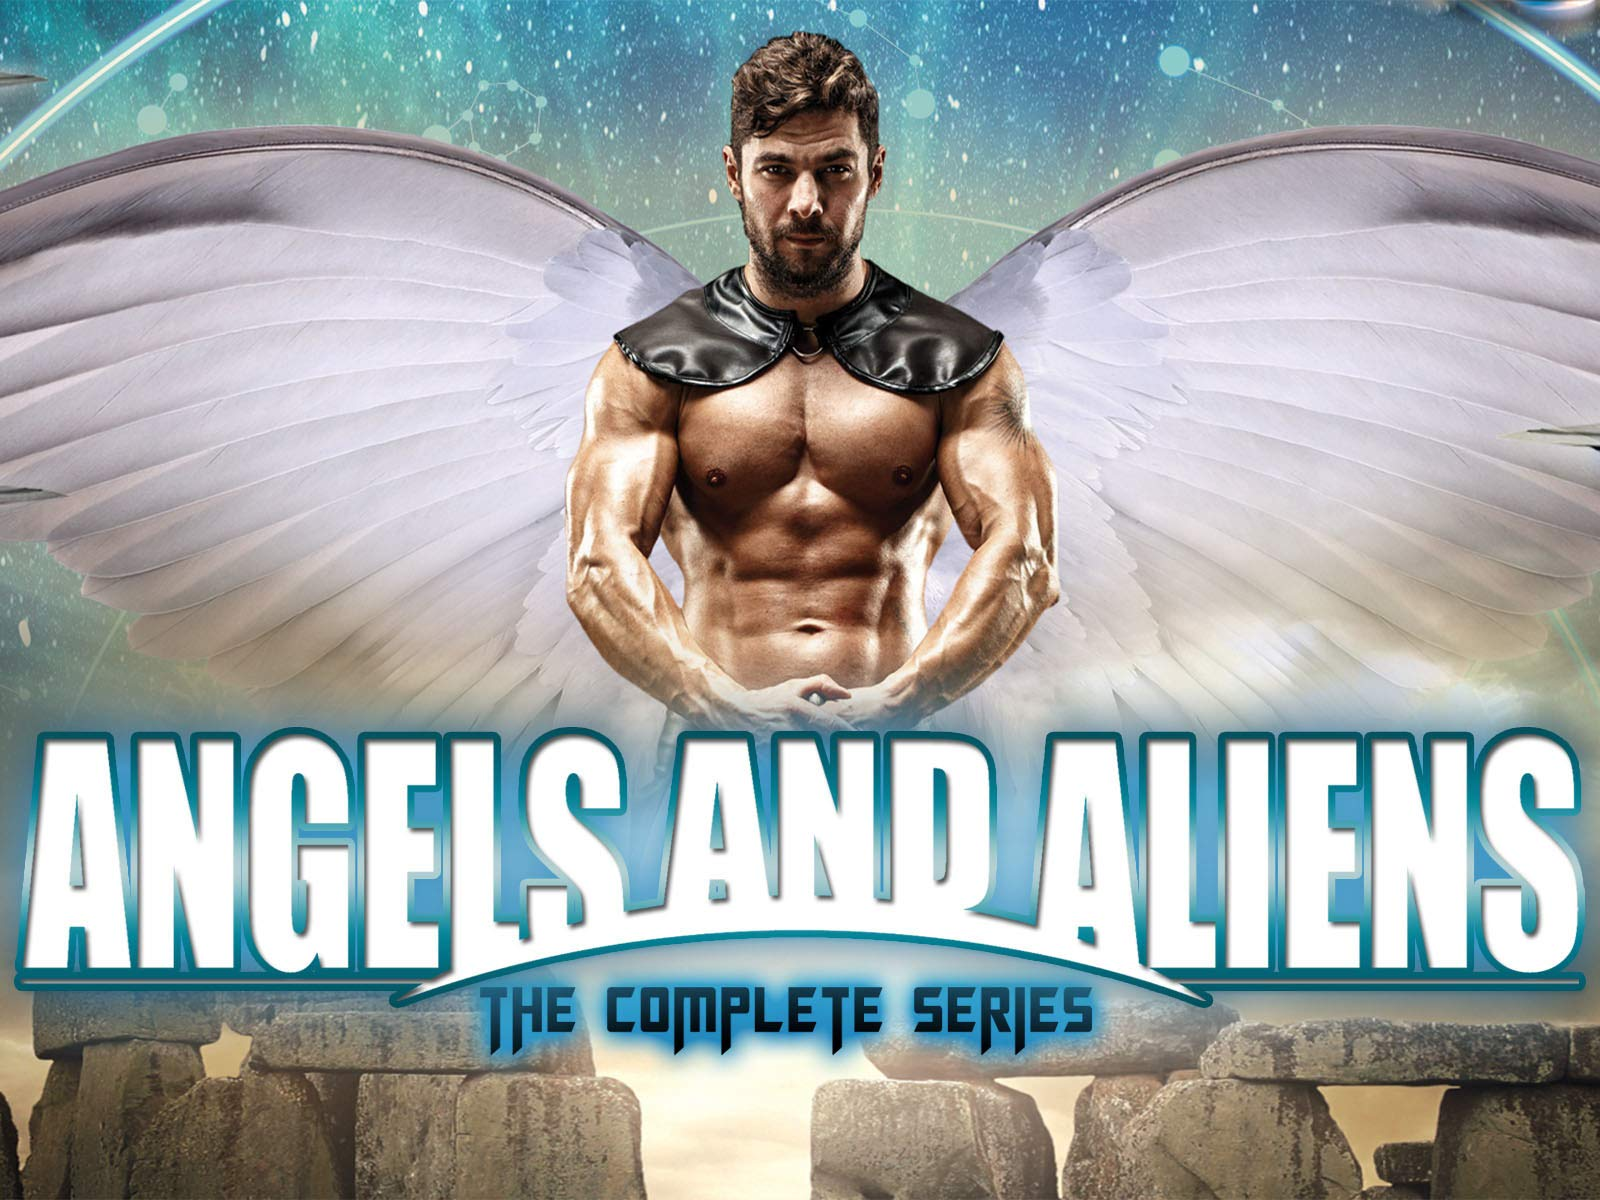 Angels and demons astrology